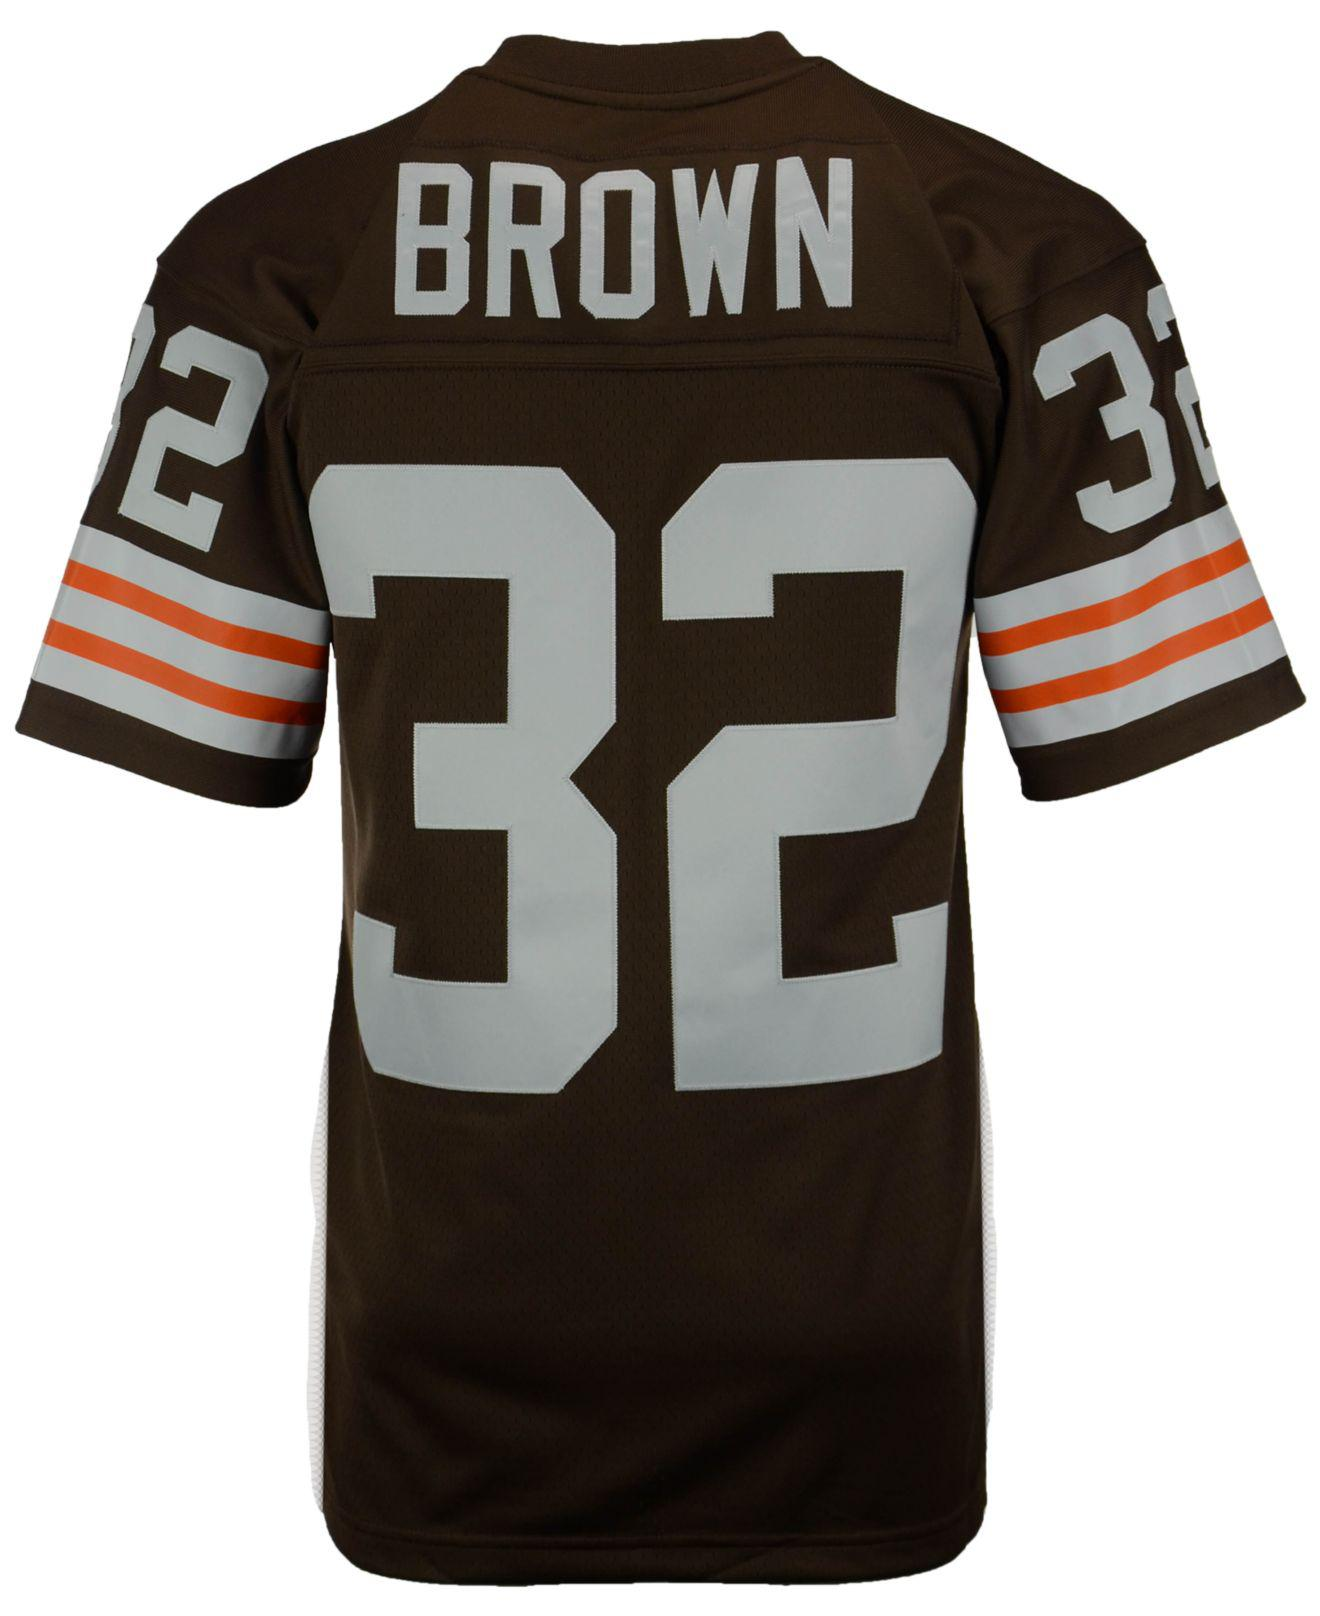 514af535852 Lyst - Mitchell & Ness Men's Replica Throwback Jersey in Brown for Men